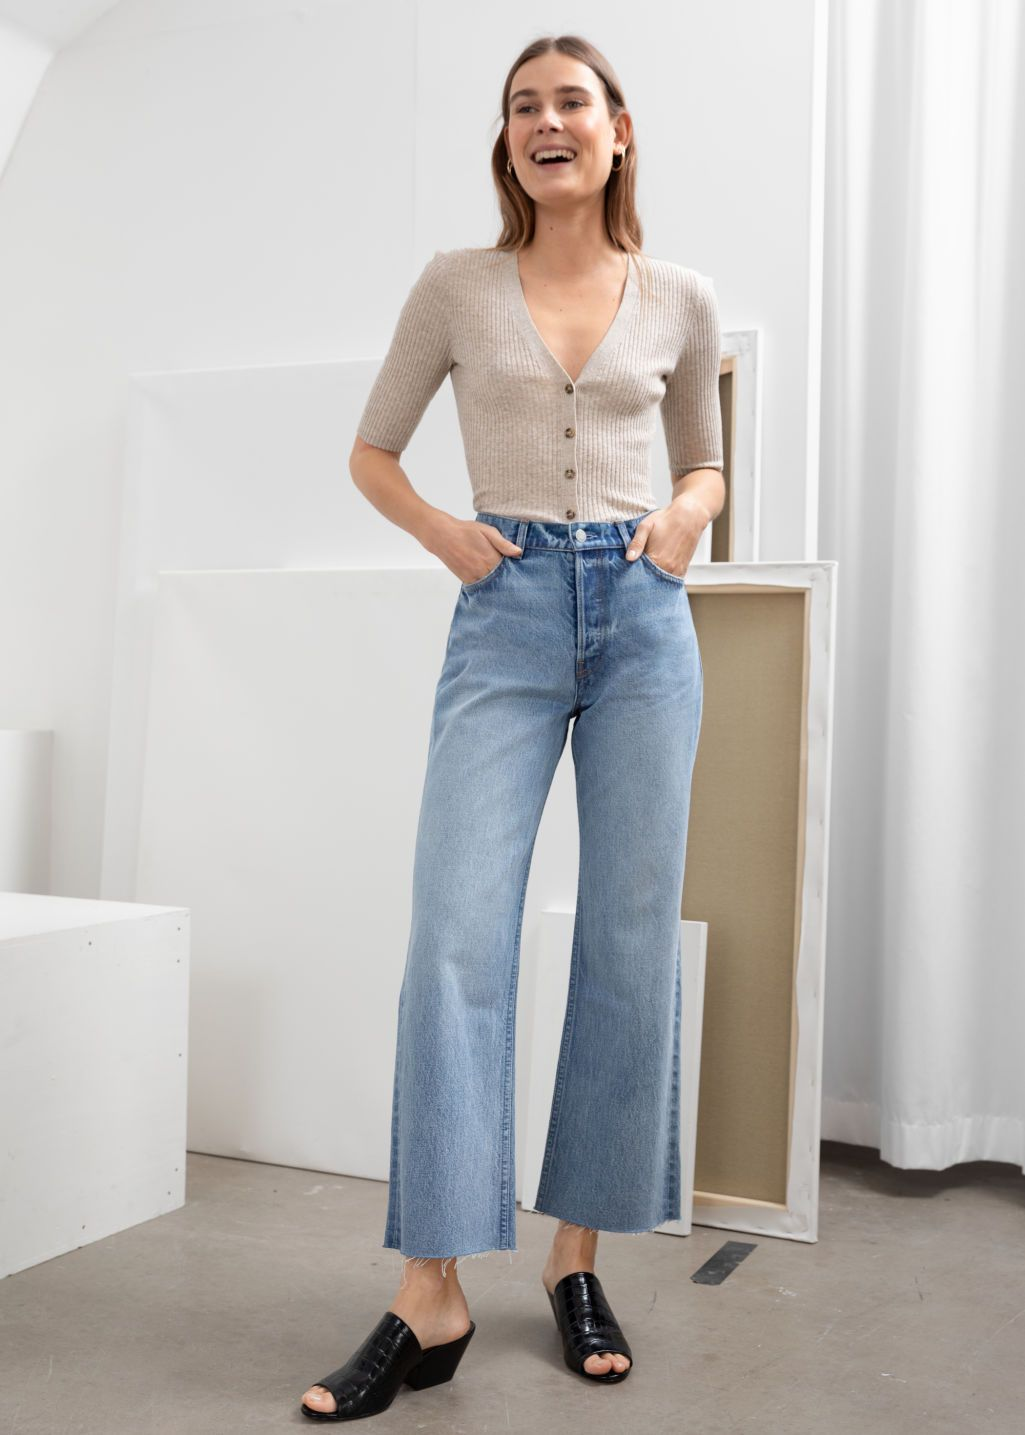 Kick flare jeans outfit